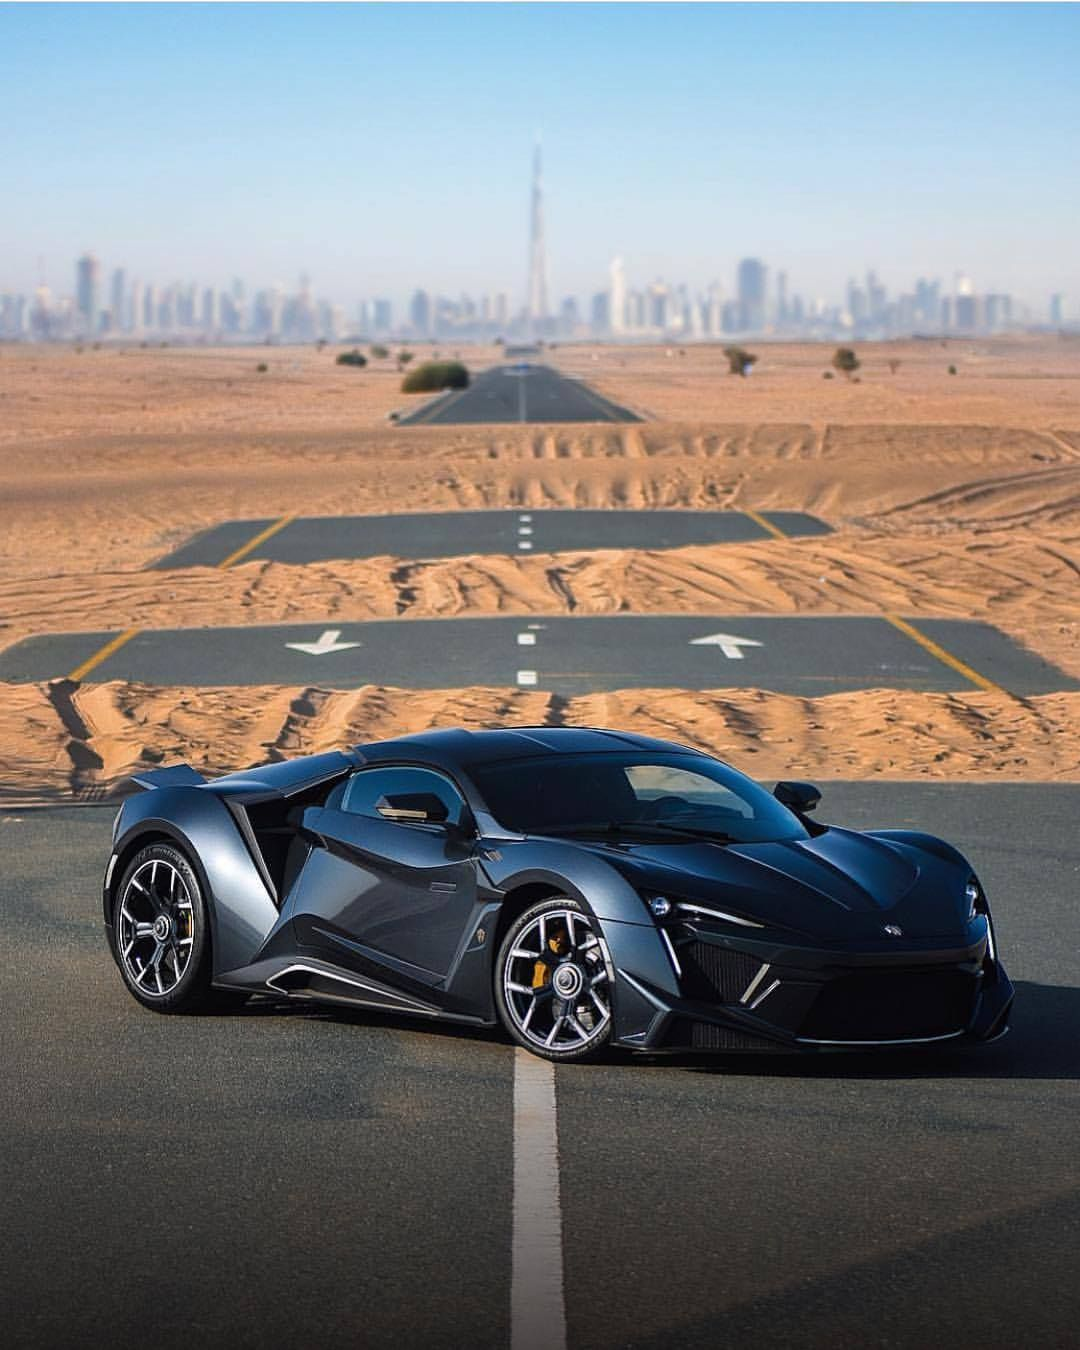 Pin By Yash Boghara On Cars With Images Super Cars Sport Cars Supersport